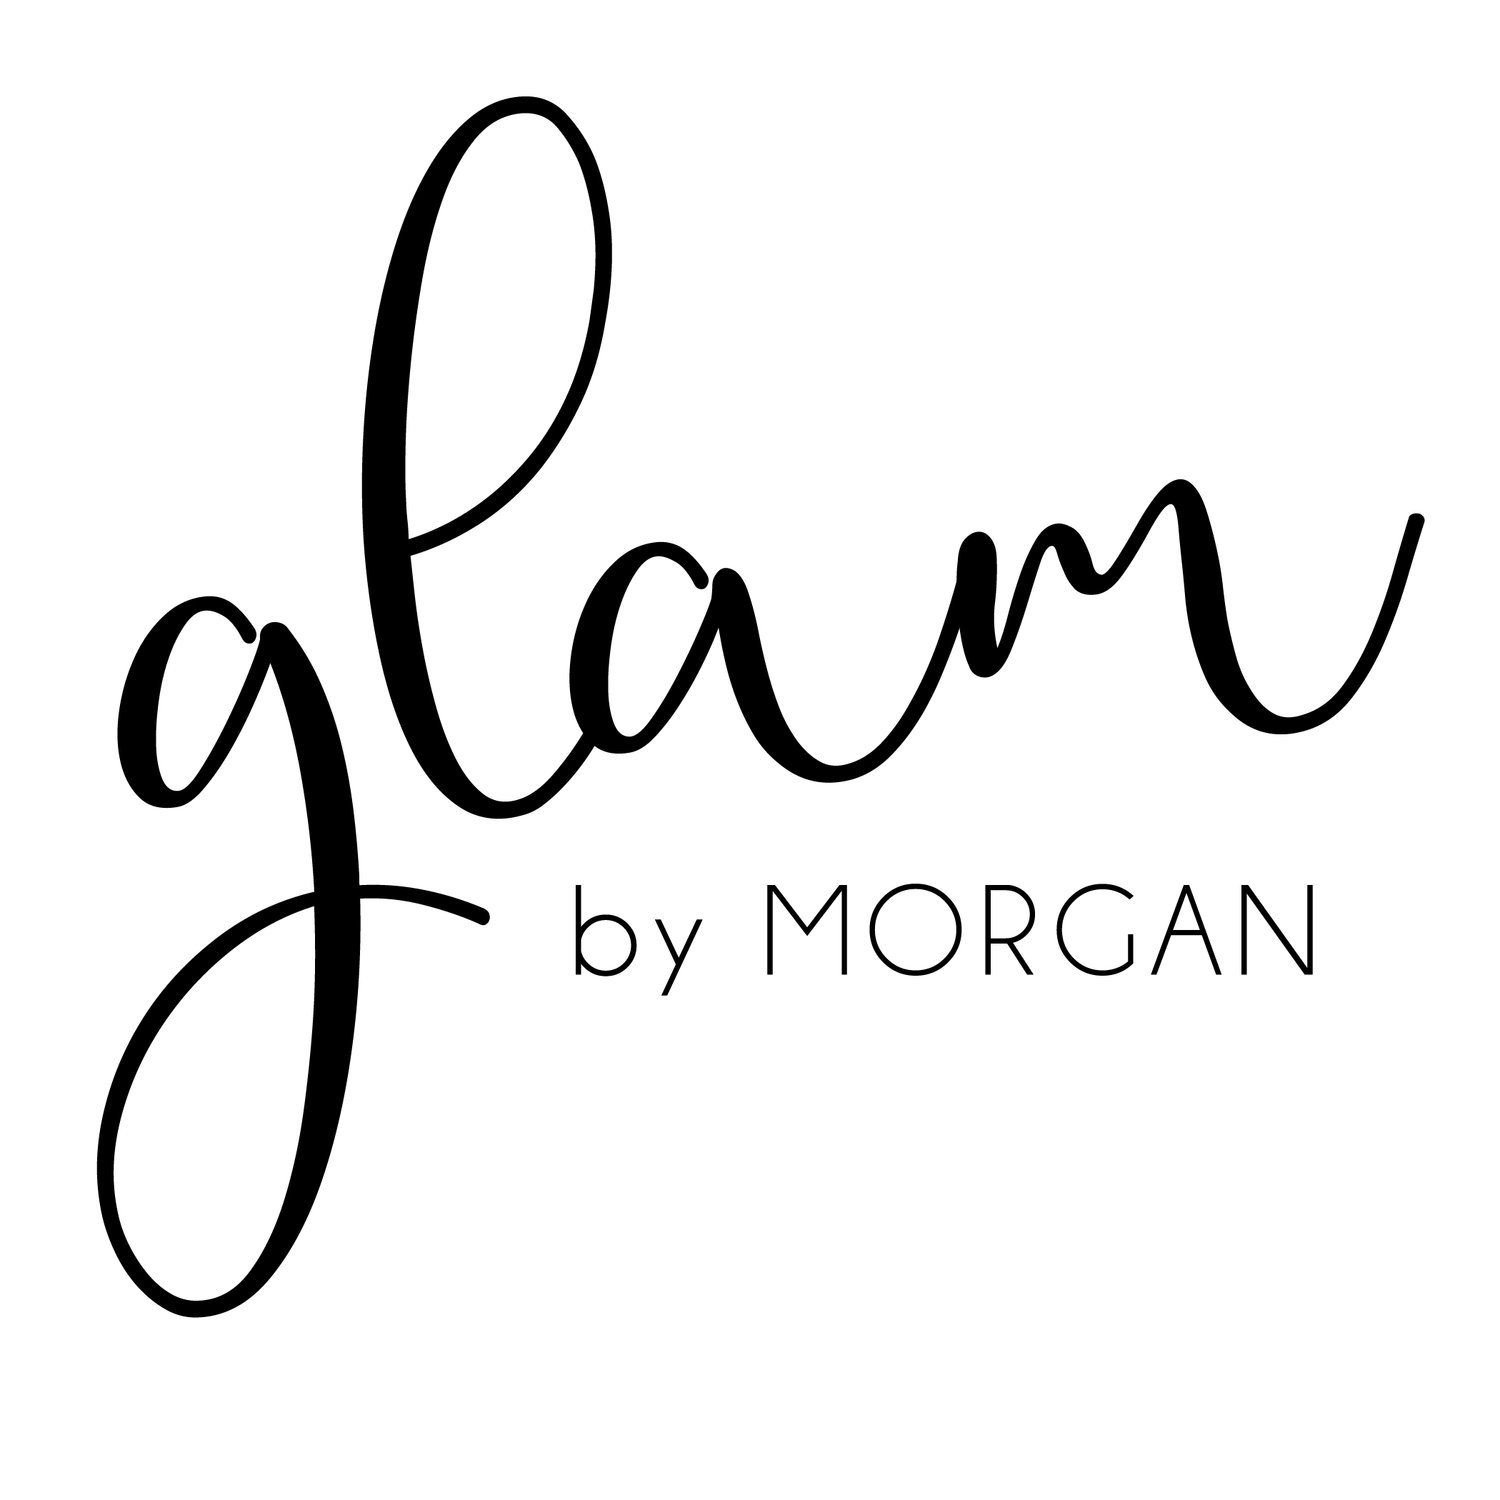 Glam by Morgan